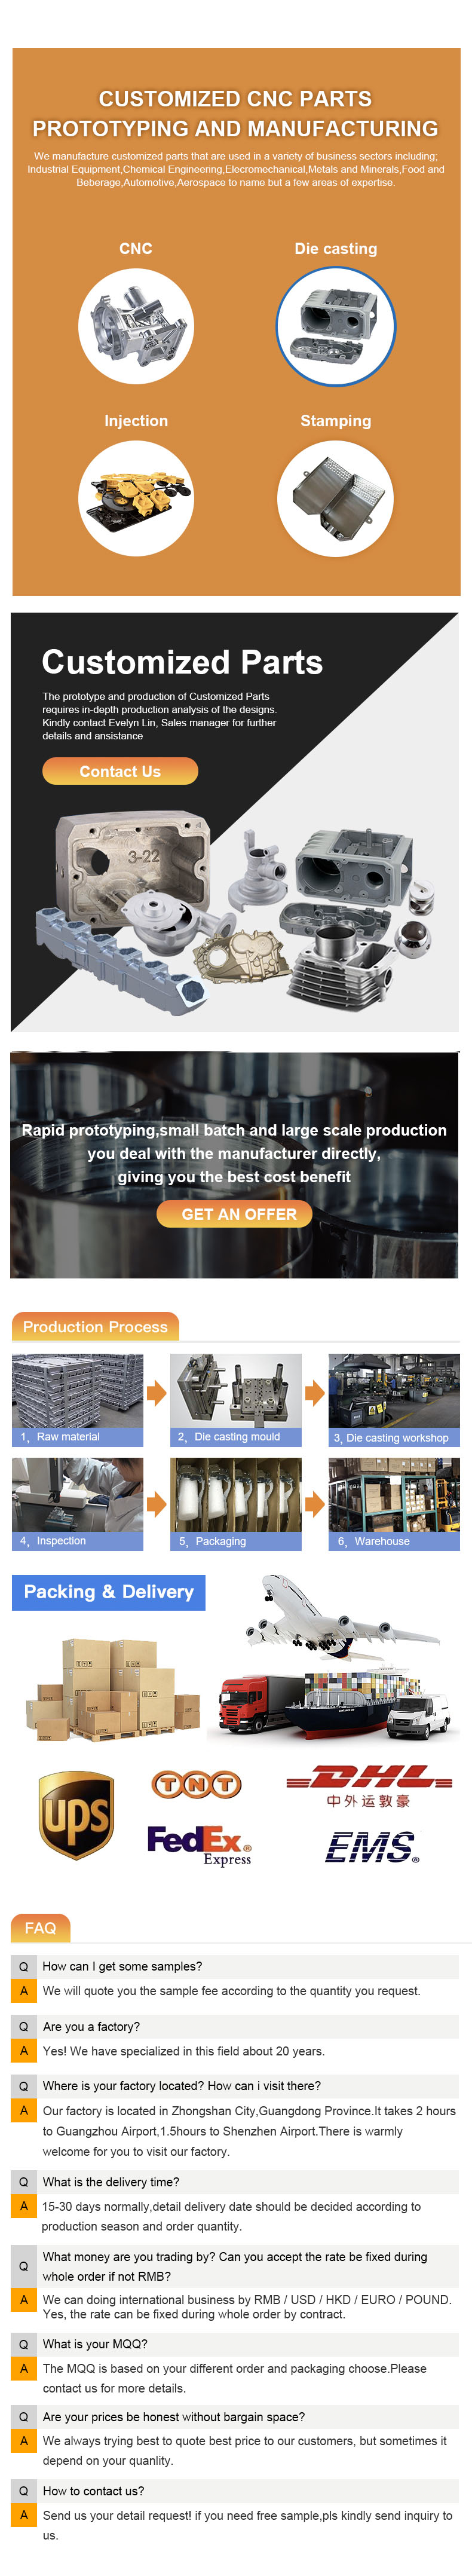 BoYang Hardware is a company specializing in the production of hardware products. It has more than 20 years of experience in manufacturing various precision machined products, stamping sheet metal products, plastic injection molding, and die-casting products. The products are sold to various European and American markets. Trust us, we We will give you the best commitment and trust, and let the quality speak for Boyang Hardware.